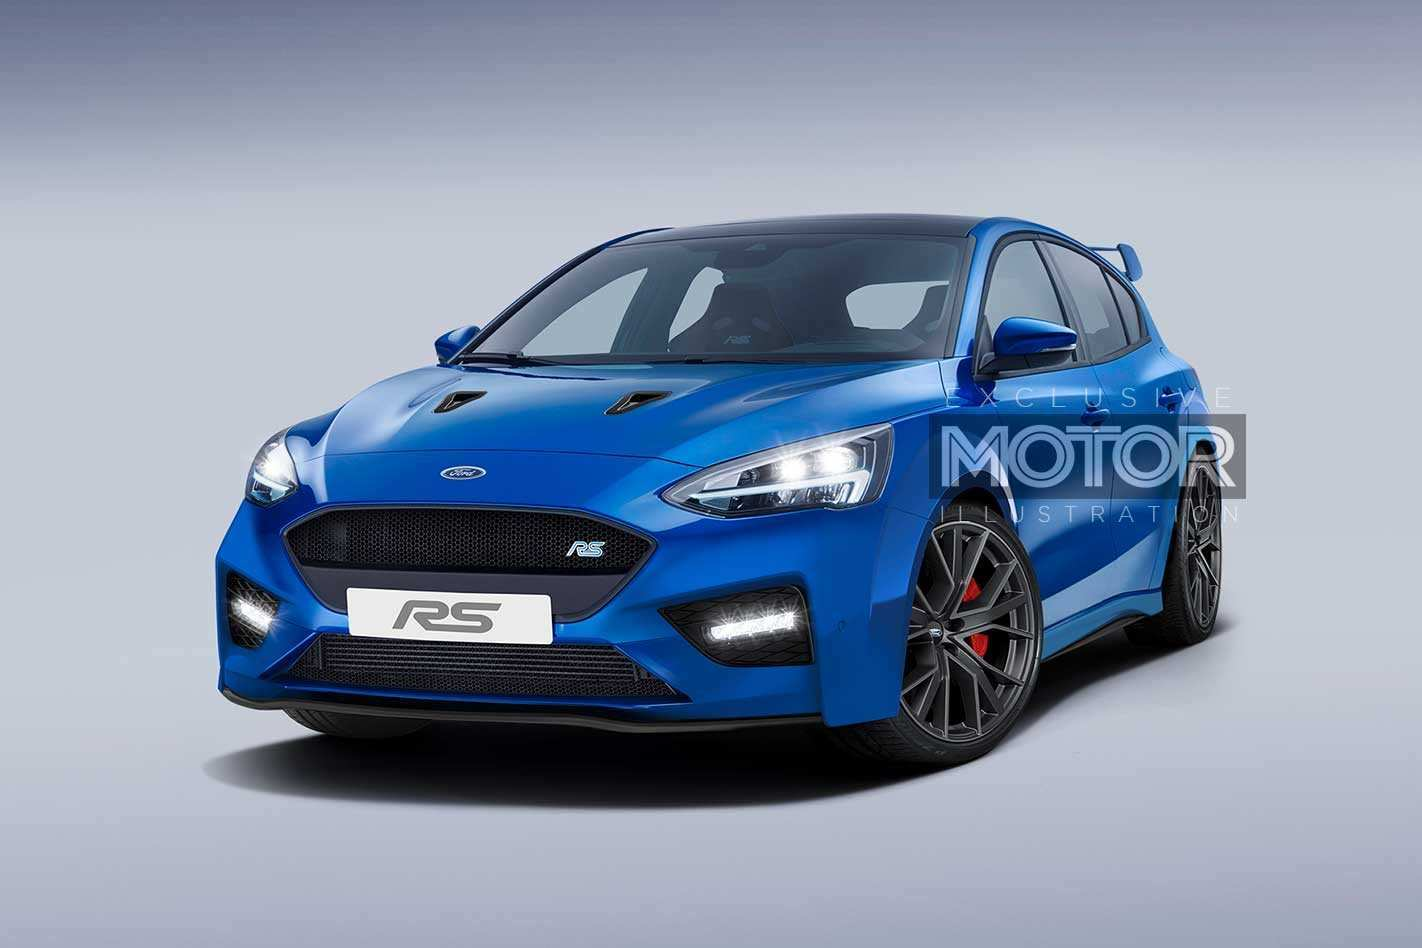 35 The Best 2020 Ford Focus Configurations